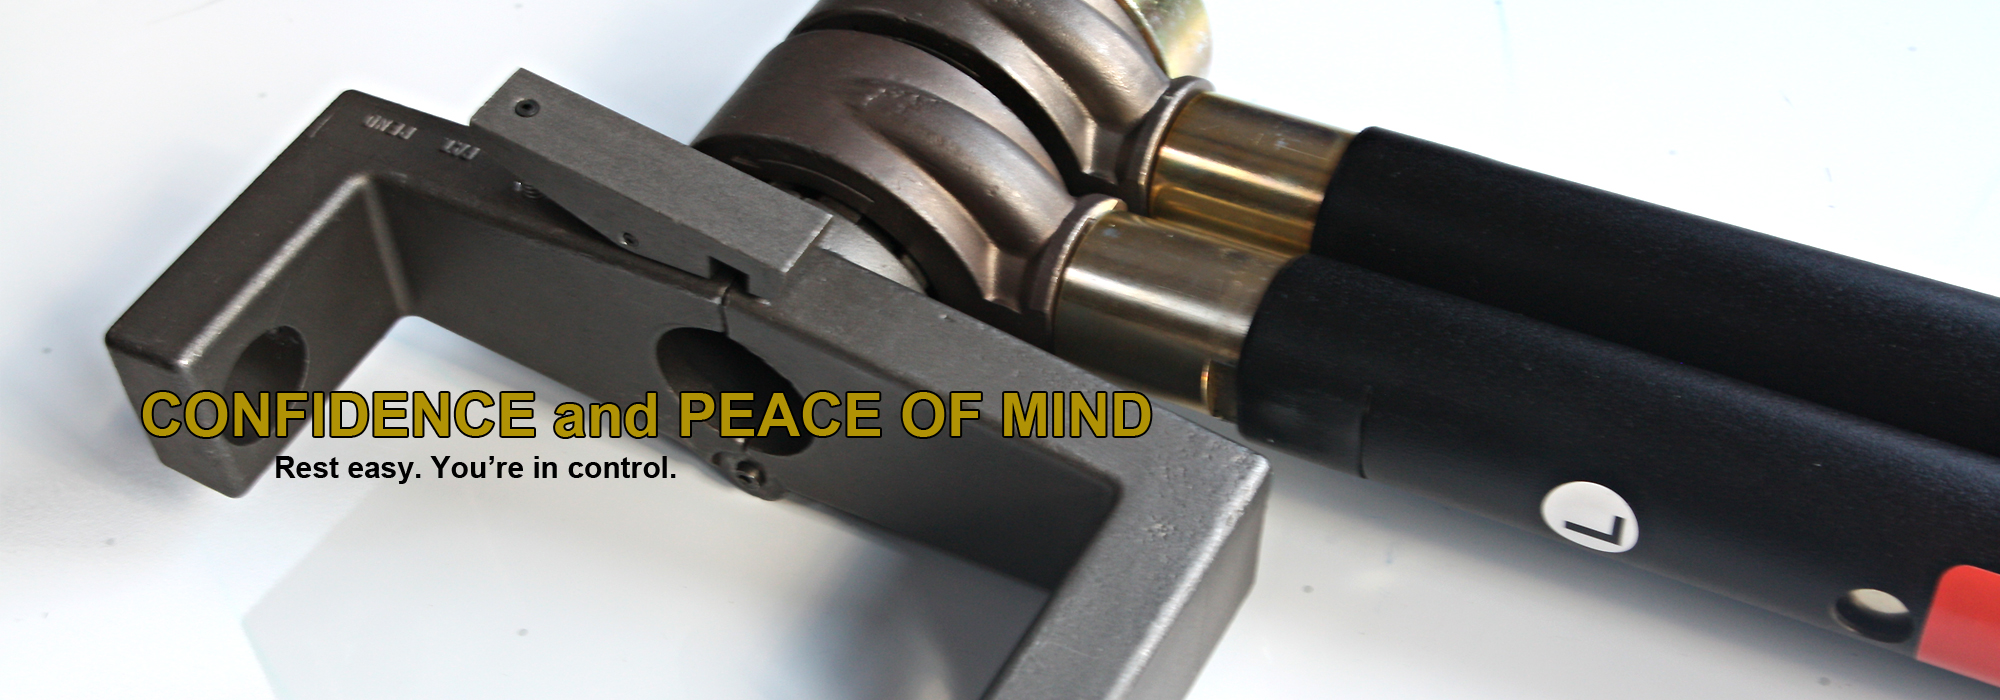 E-Z RATCH™ provides confidence and peace of mind.